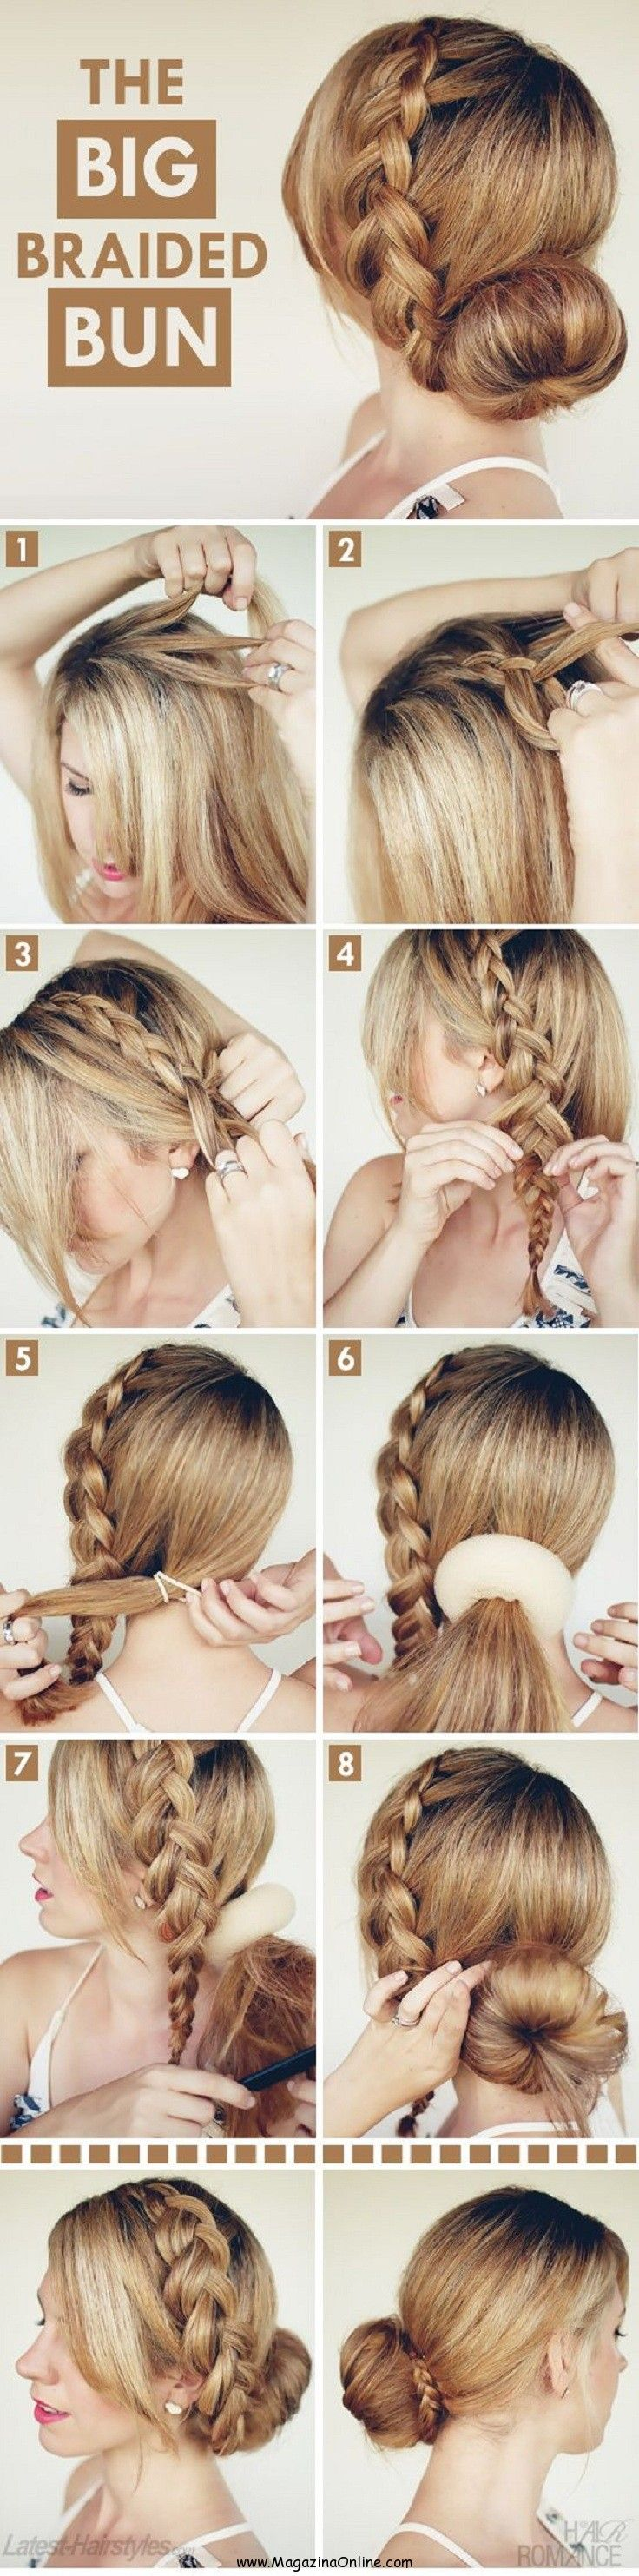 107 best Hairstyles images on Pinterest